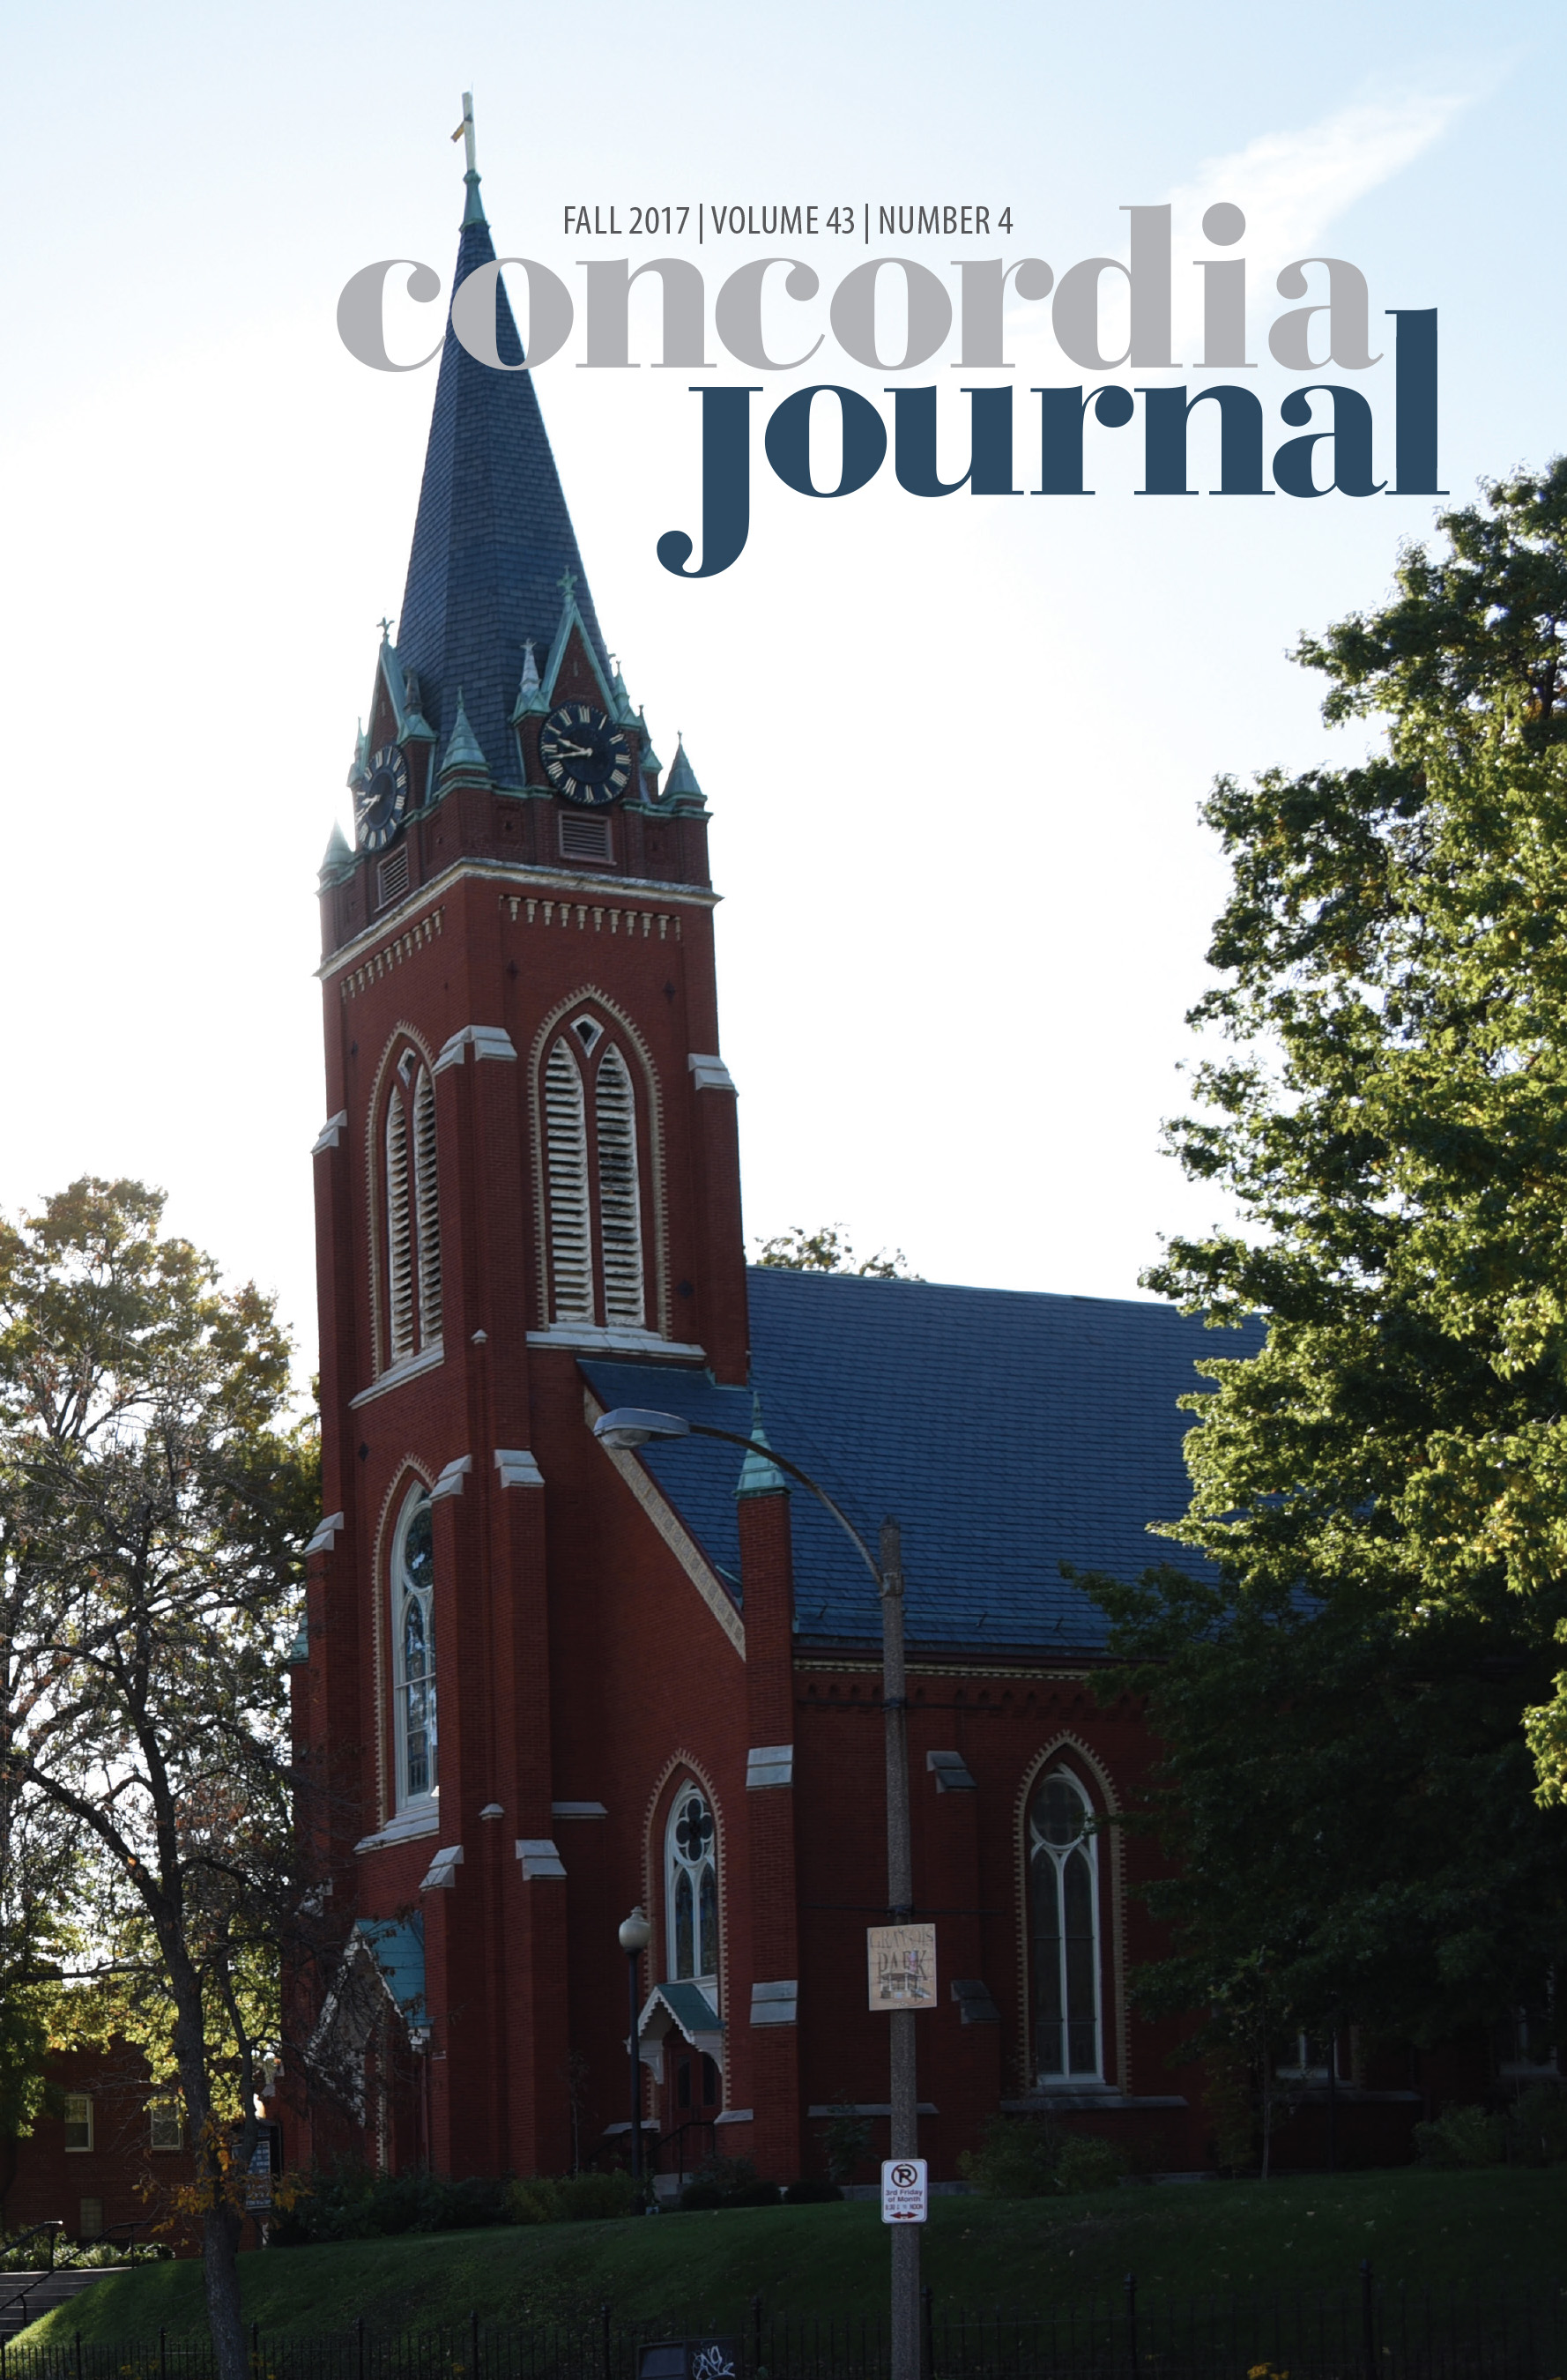 Concordia Journal, Fall 2017